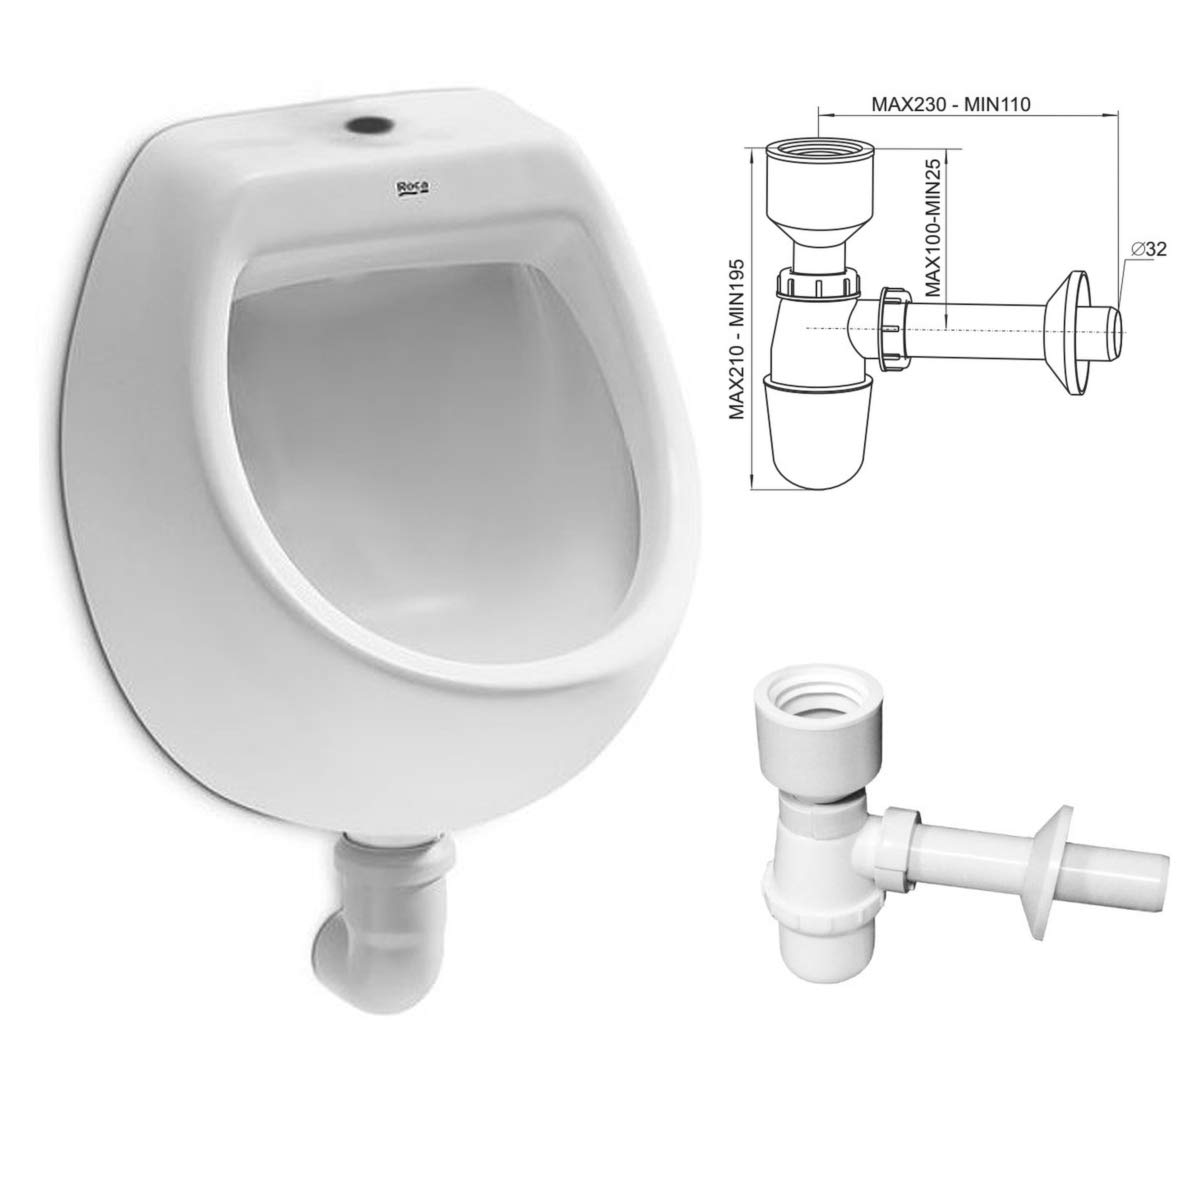 Urinal Inlet Top White Modern High Quality Ceramic Pissoir Pico Vertical Pissoir Flush Valve Urinal Flush Valve Hydro H VBChome Set